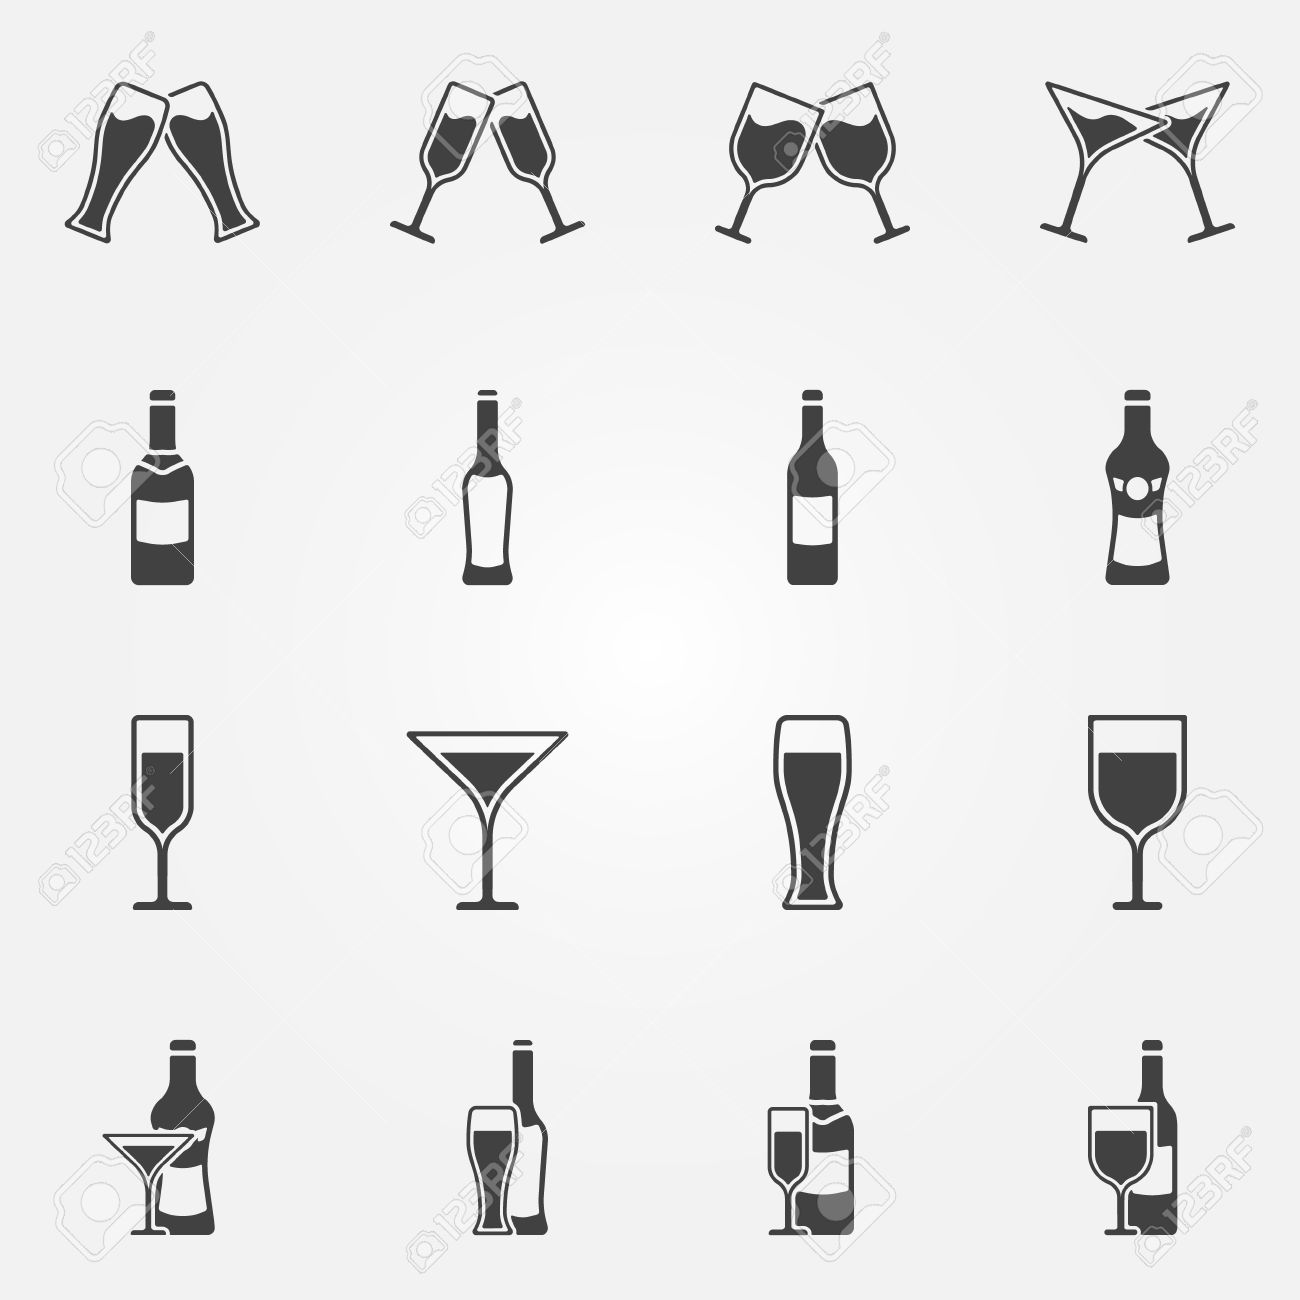 Drink Alcohol Beverage Icons.